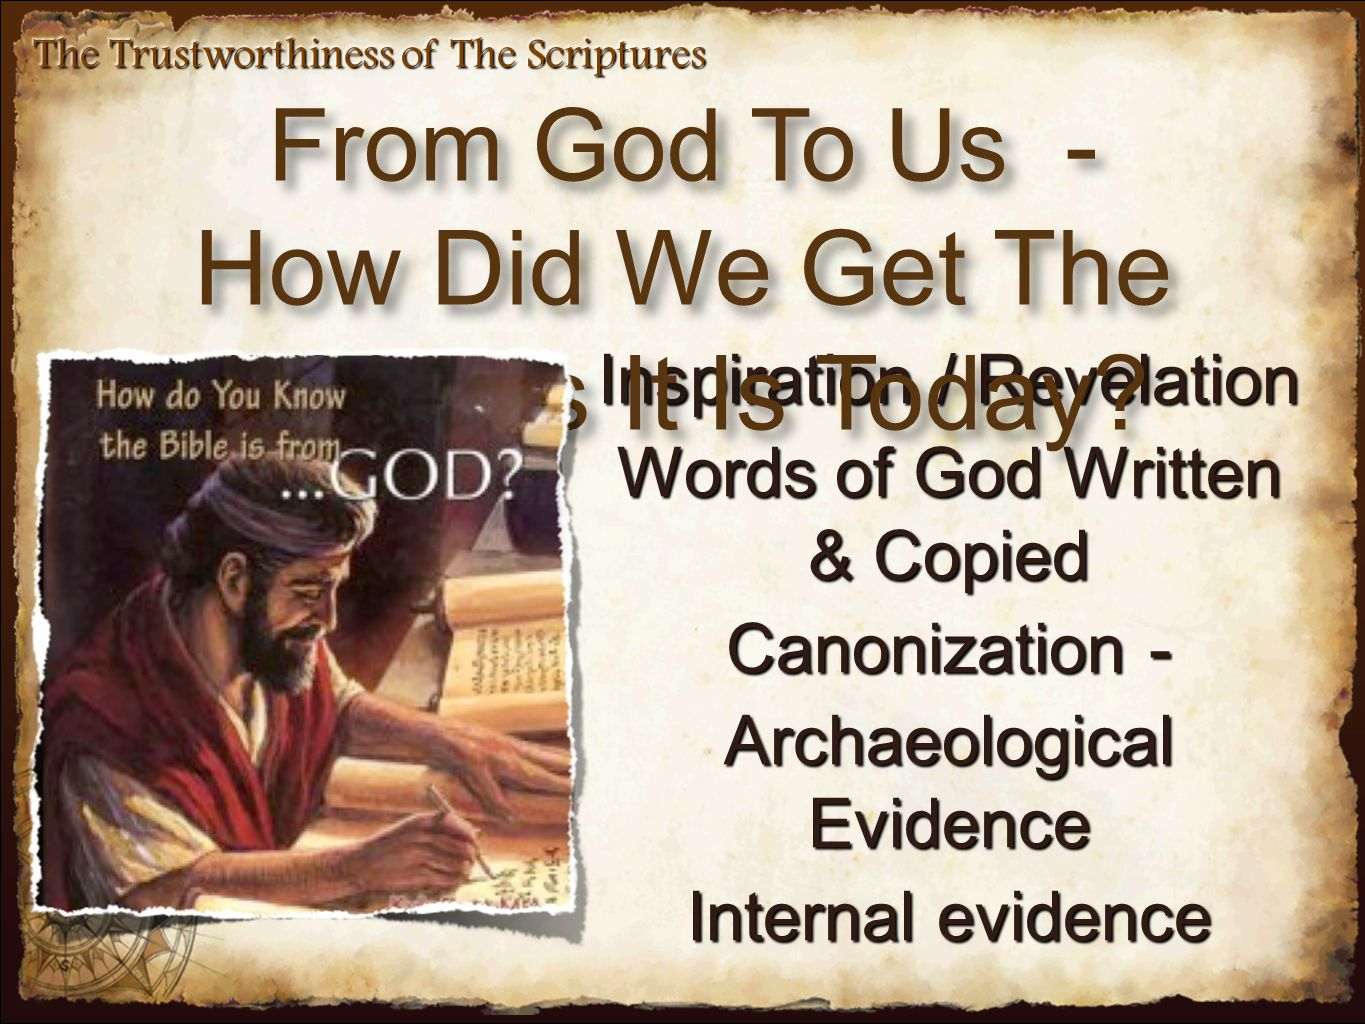 ✴ Nothing has so radically changed since the Bible was completed that it is no longer understandable.